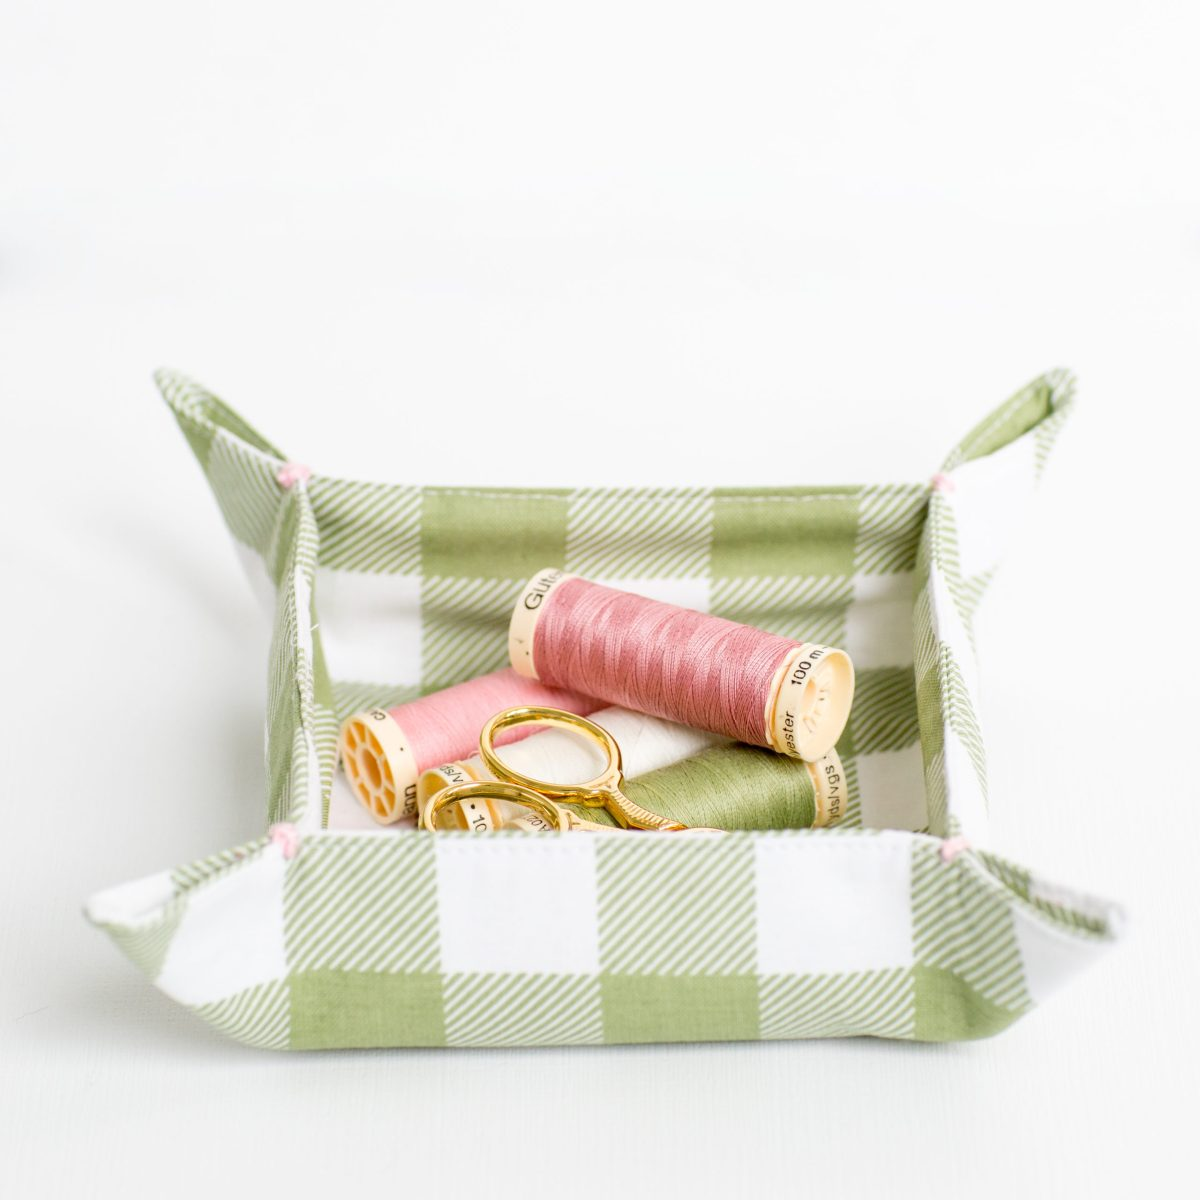 Fabric Nesting Tray Tutorial green